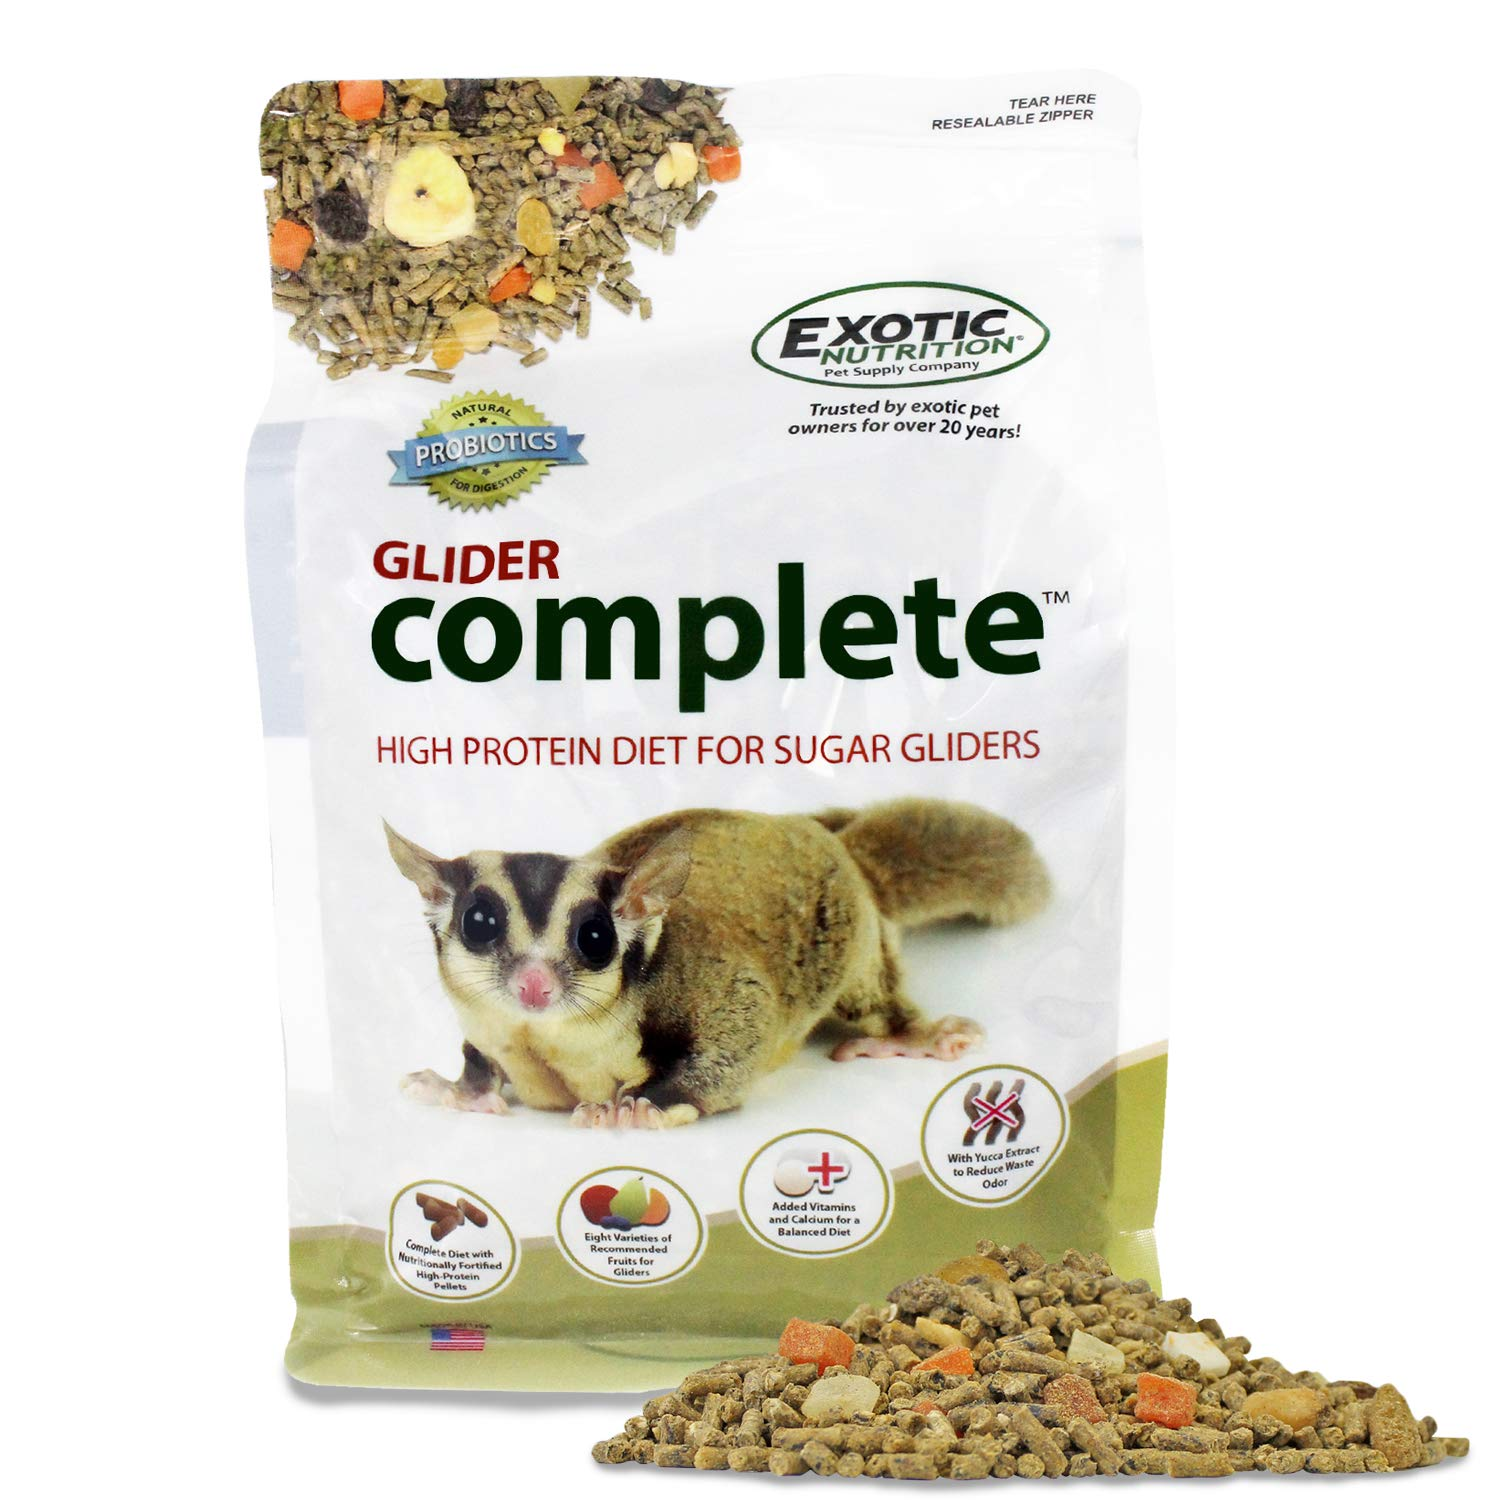 Glider Complete (10 lb.) - Healthy High Protein Nutritionally Complete Staple Diet Sugar Glider Food by Exotic Nutrition